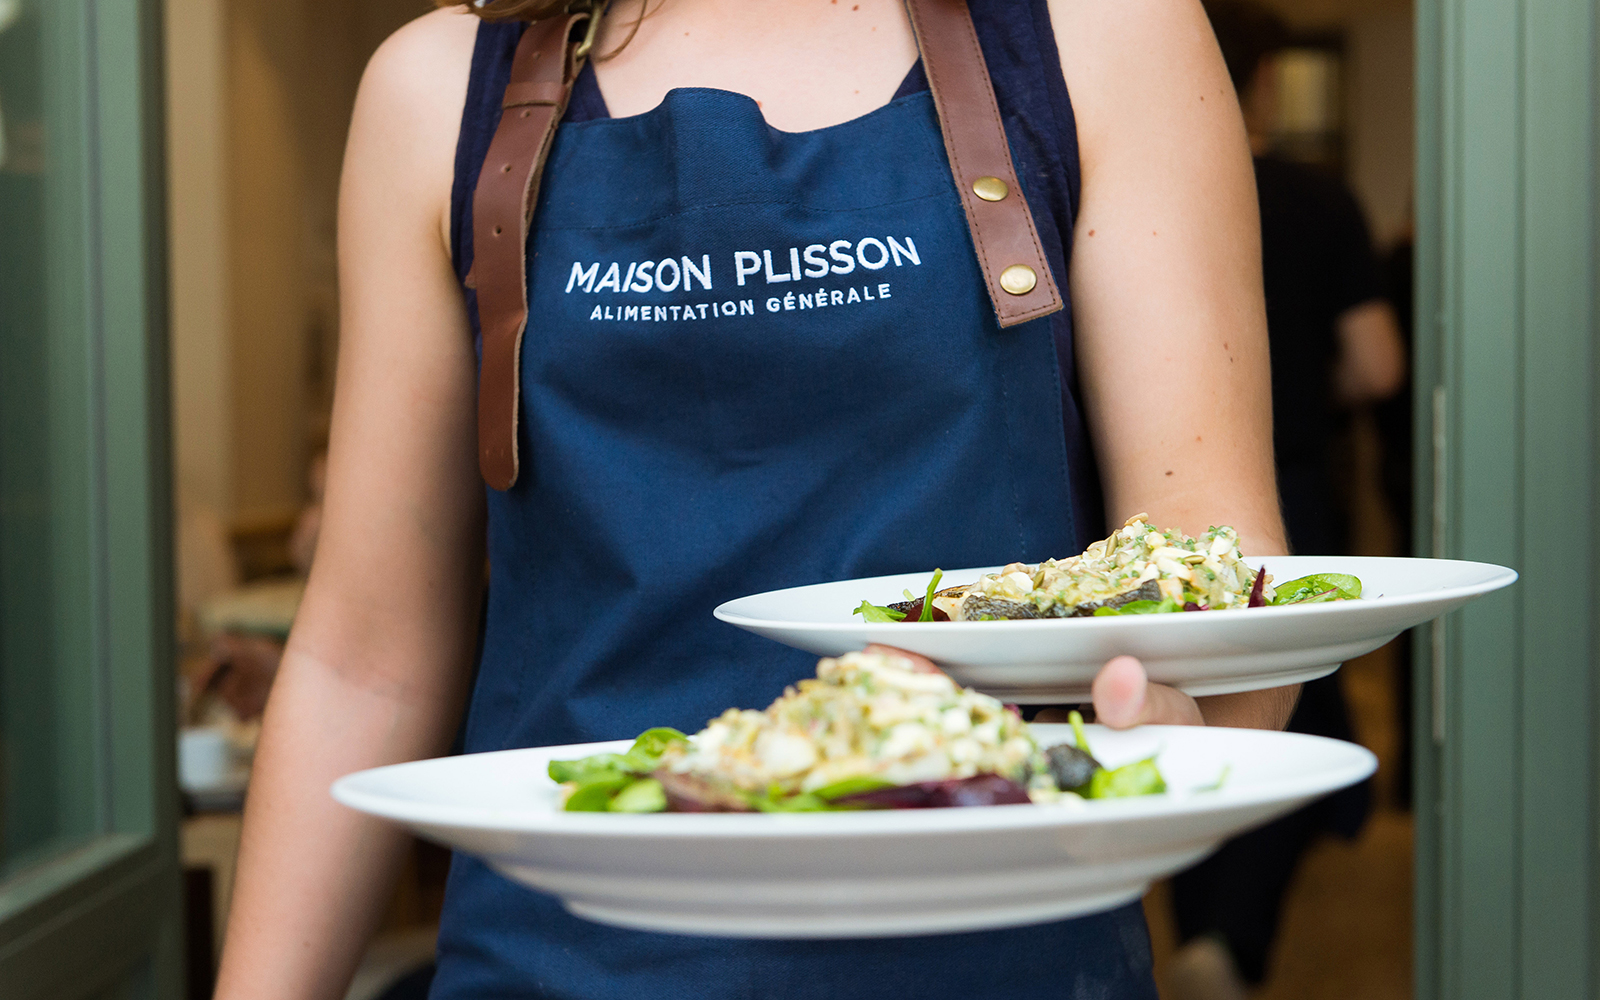 MAISON0515-plisson-waitress.jpg